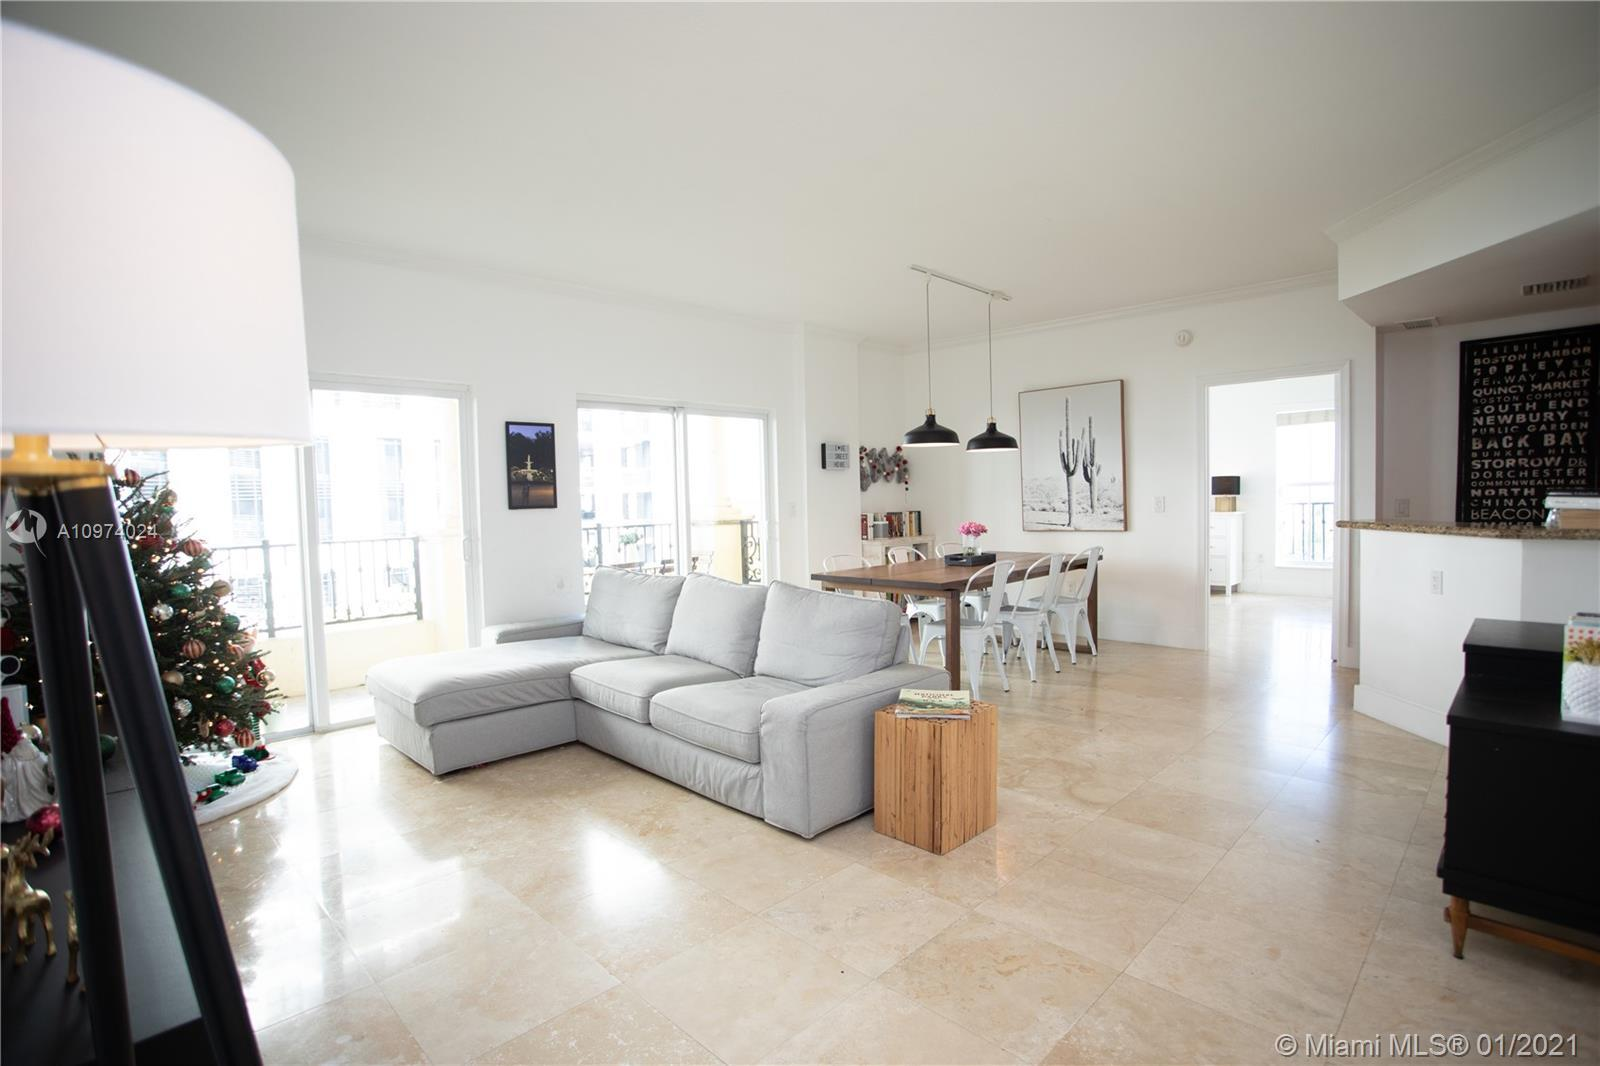 Coral Gables living at its absolute finest. This stunning and spacious two bedroom + Den corner unit